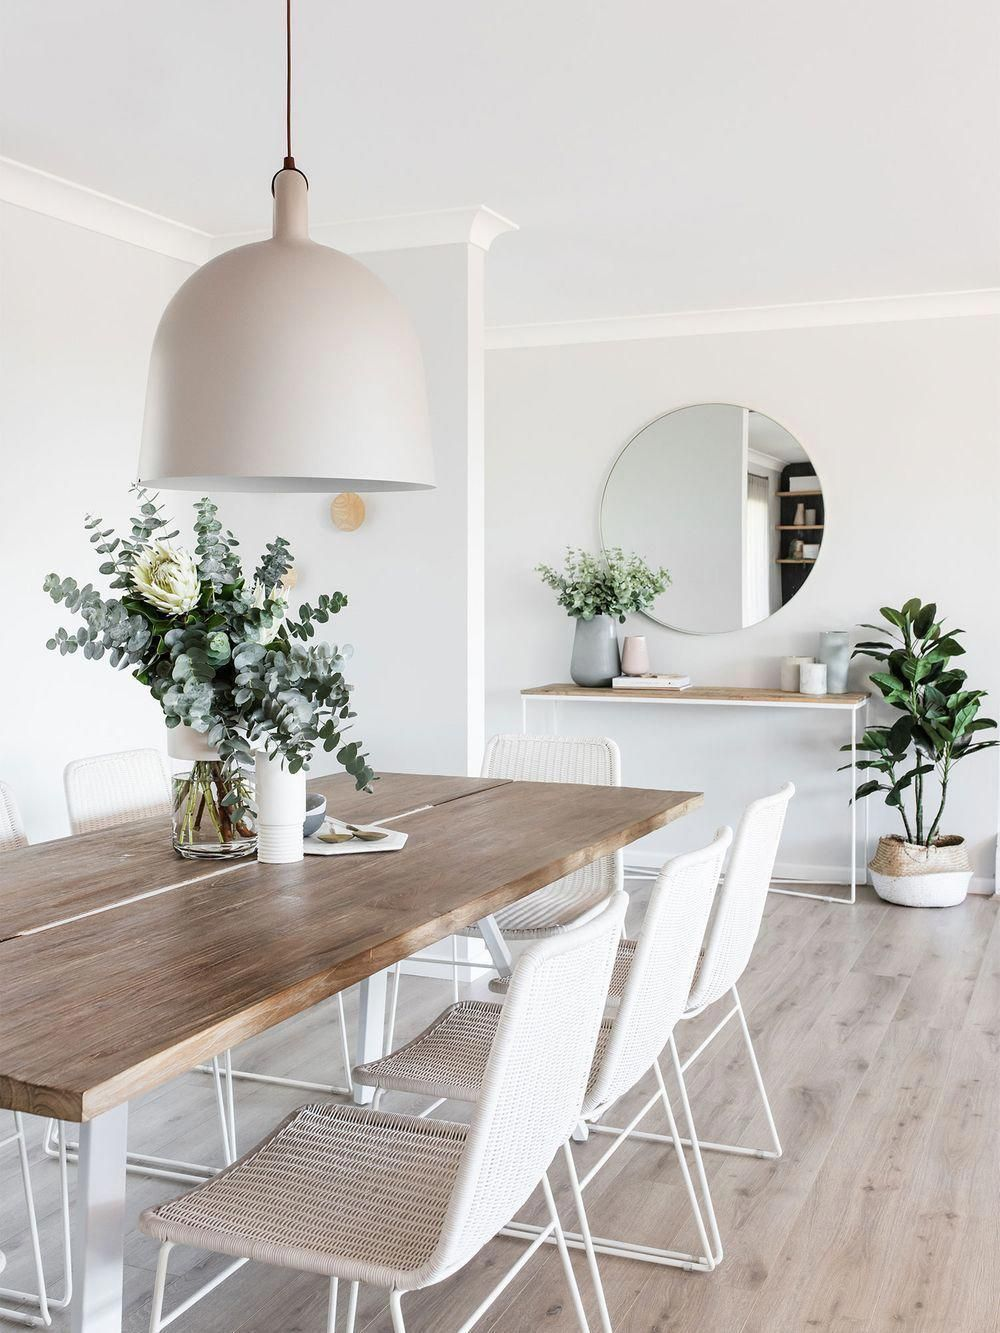 Living Room Lunchroomdeco Tips To Install An Office In A Small